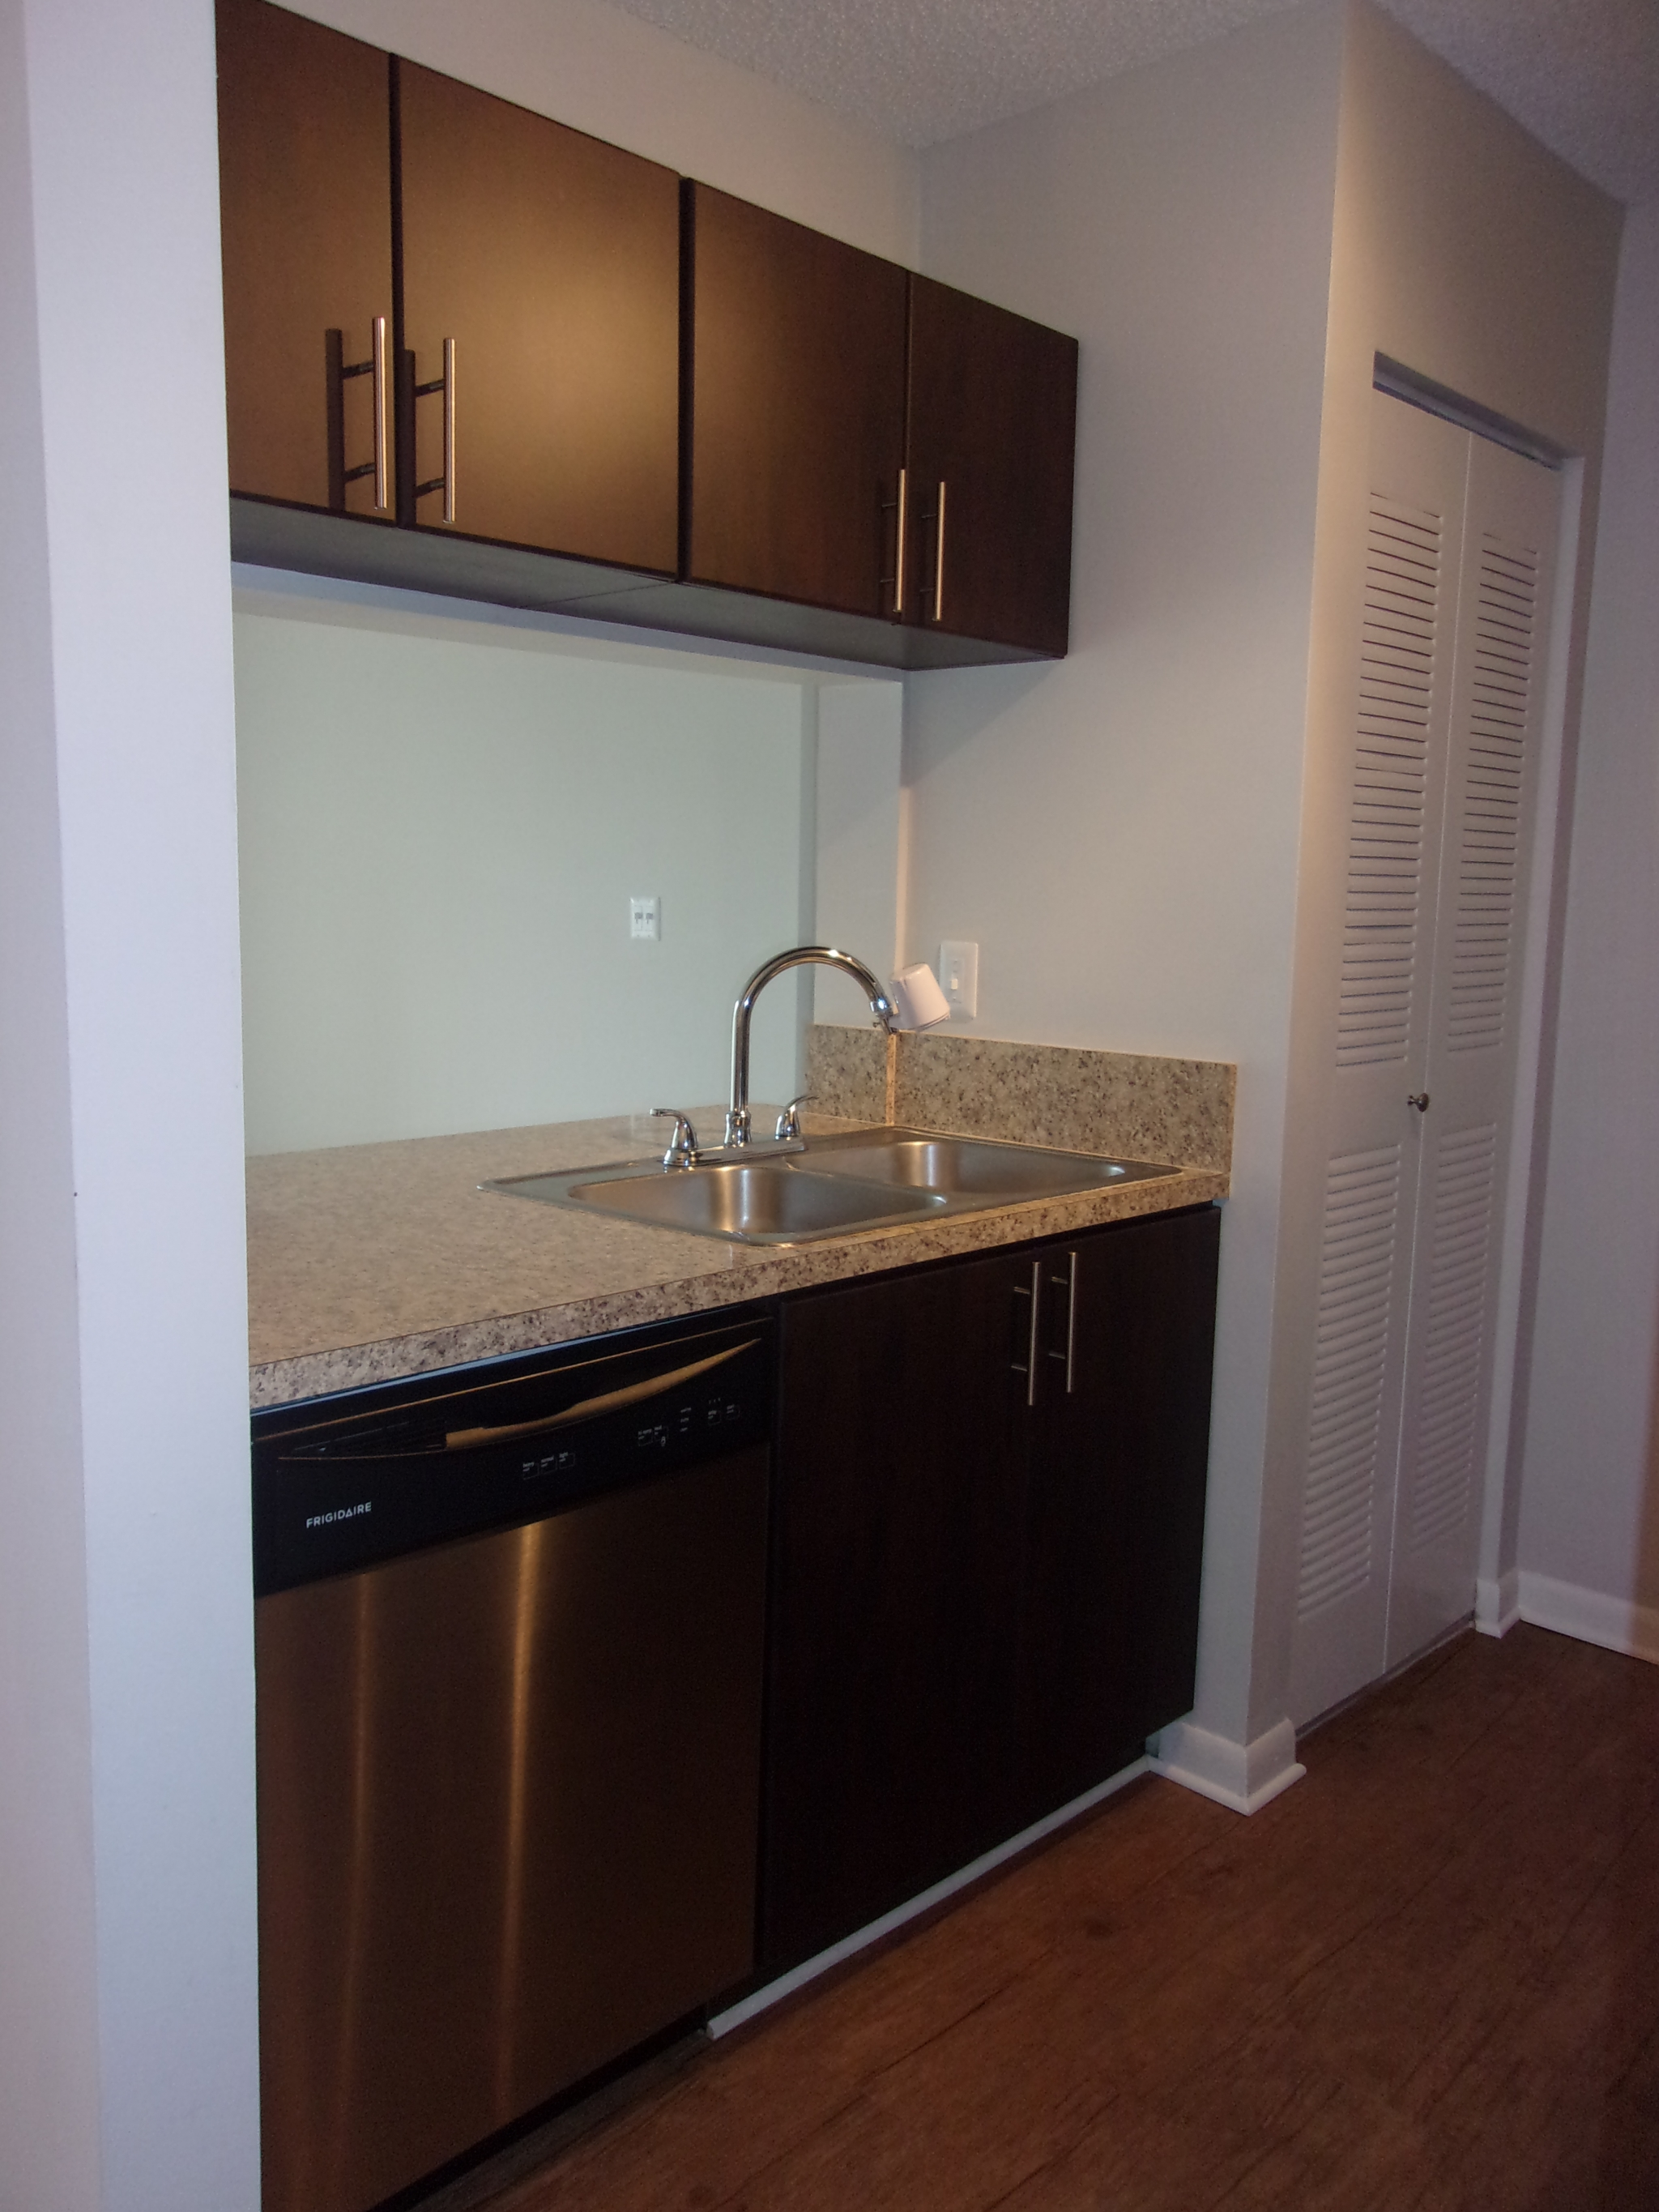 Compact kitchen counter with large stainless steel sink, overhead cabinets, and dishwasher next to double-door pantry